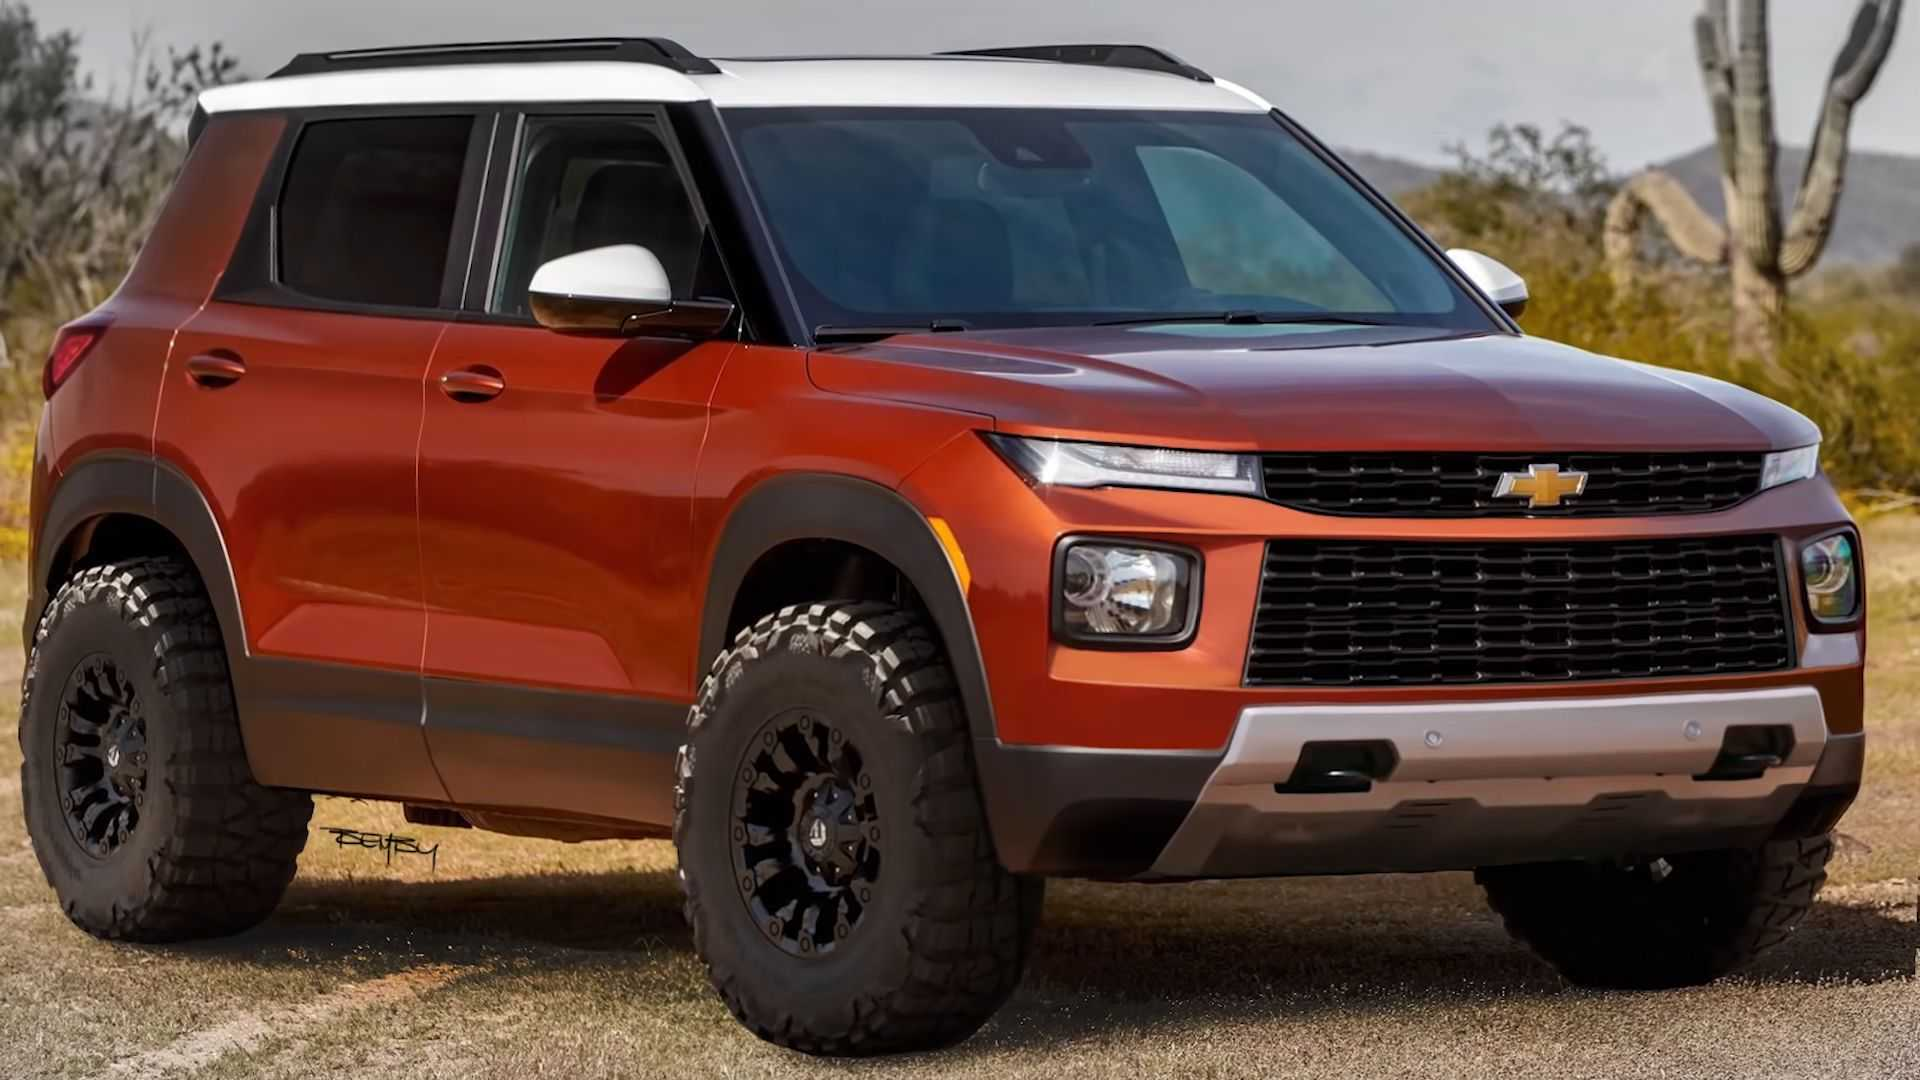 2021 chevrolet trailblazer gets offroad reboot in new